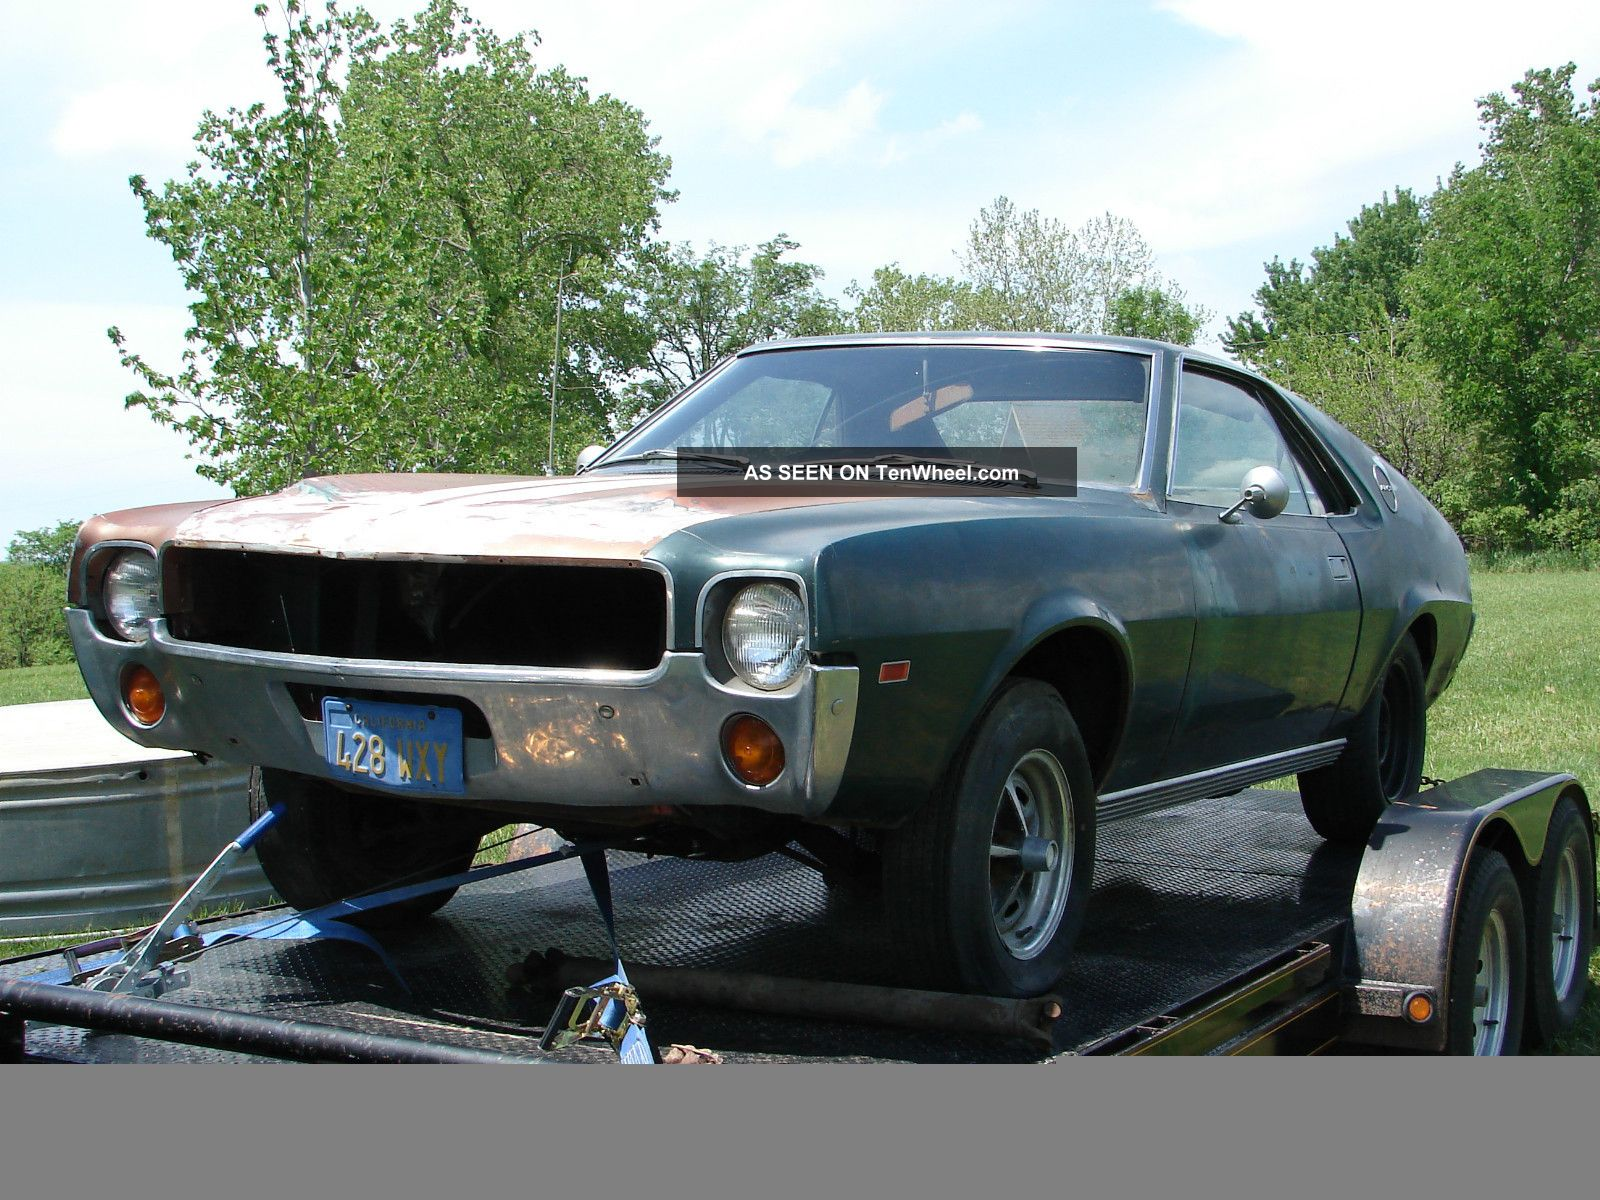 1968 68 Amx Amc Javelin AMC photo